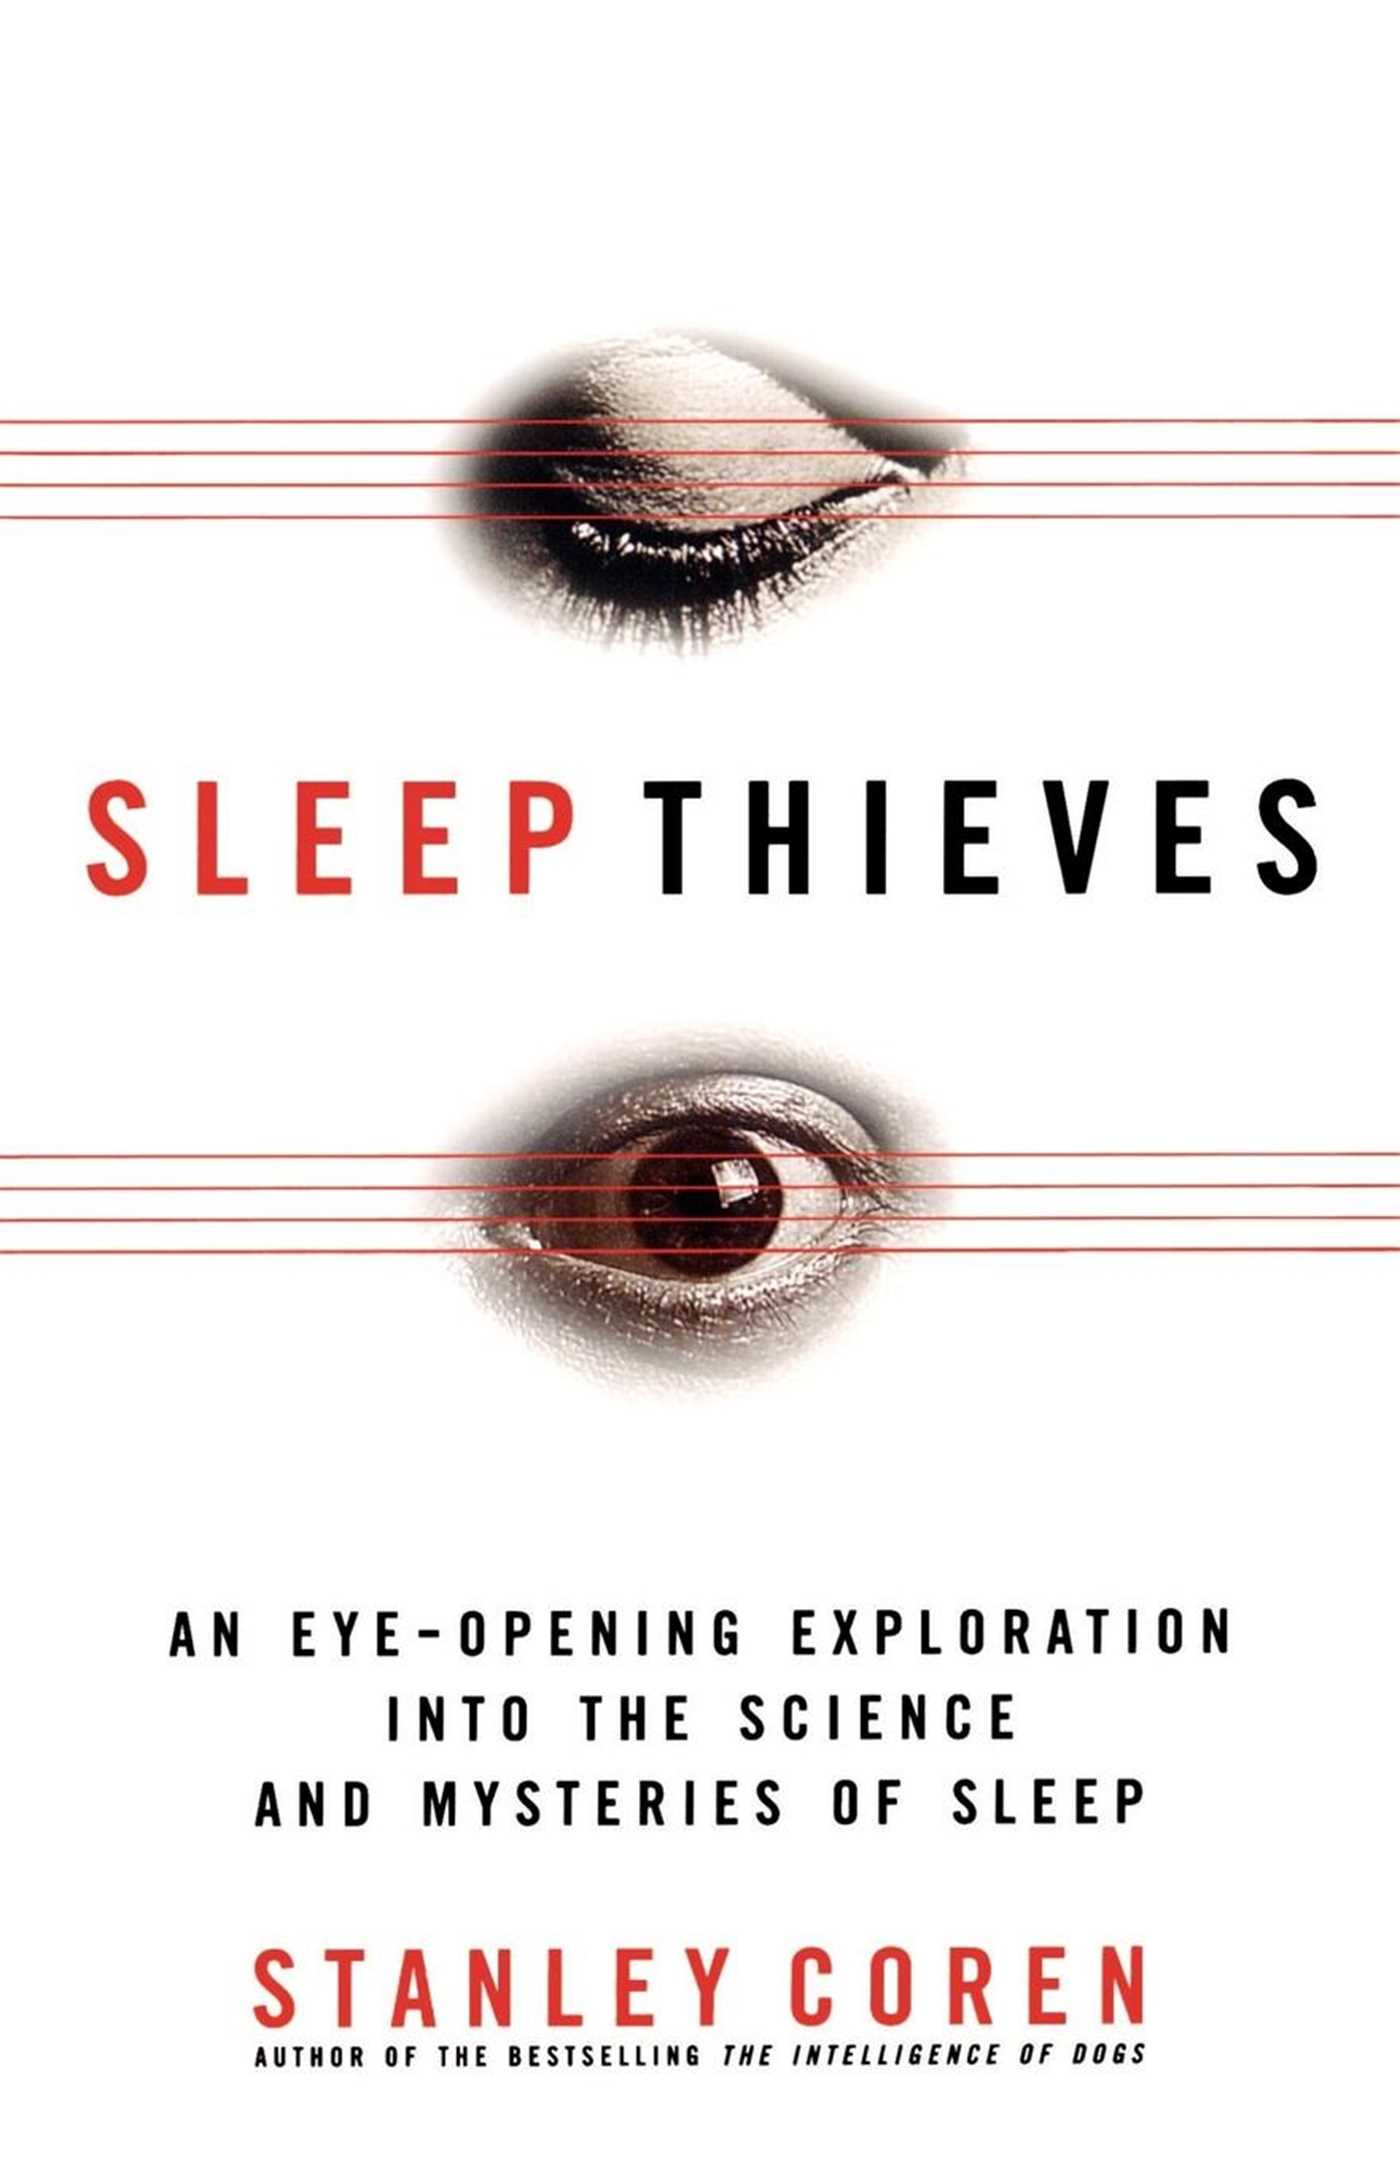 Sleep thieves 9781439105375 hr